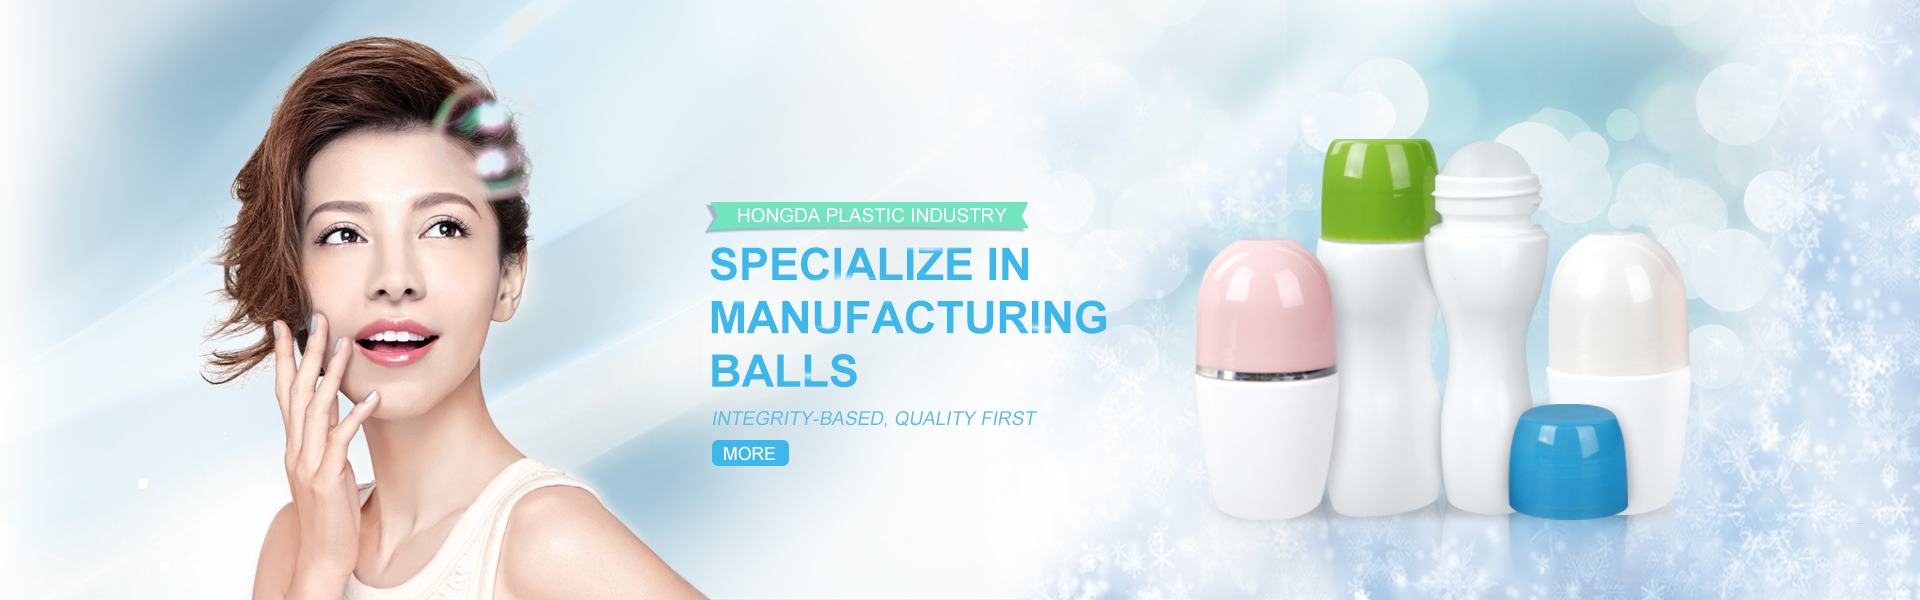 Hongda Plastics - professional in roll on ball&bottle for more than 15 years